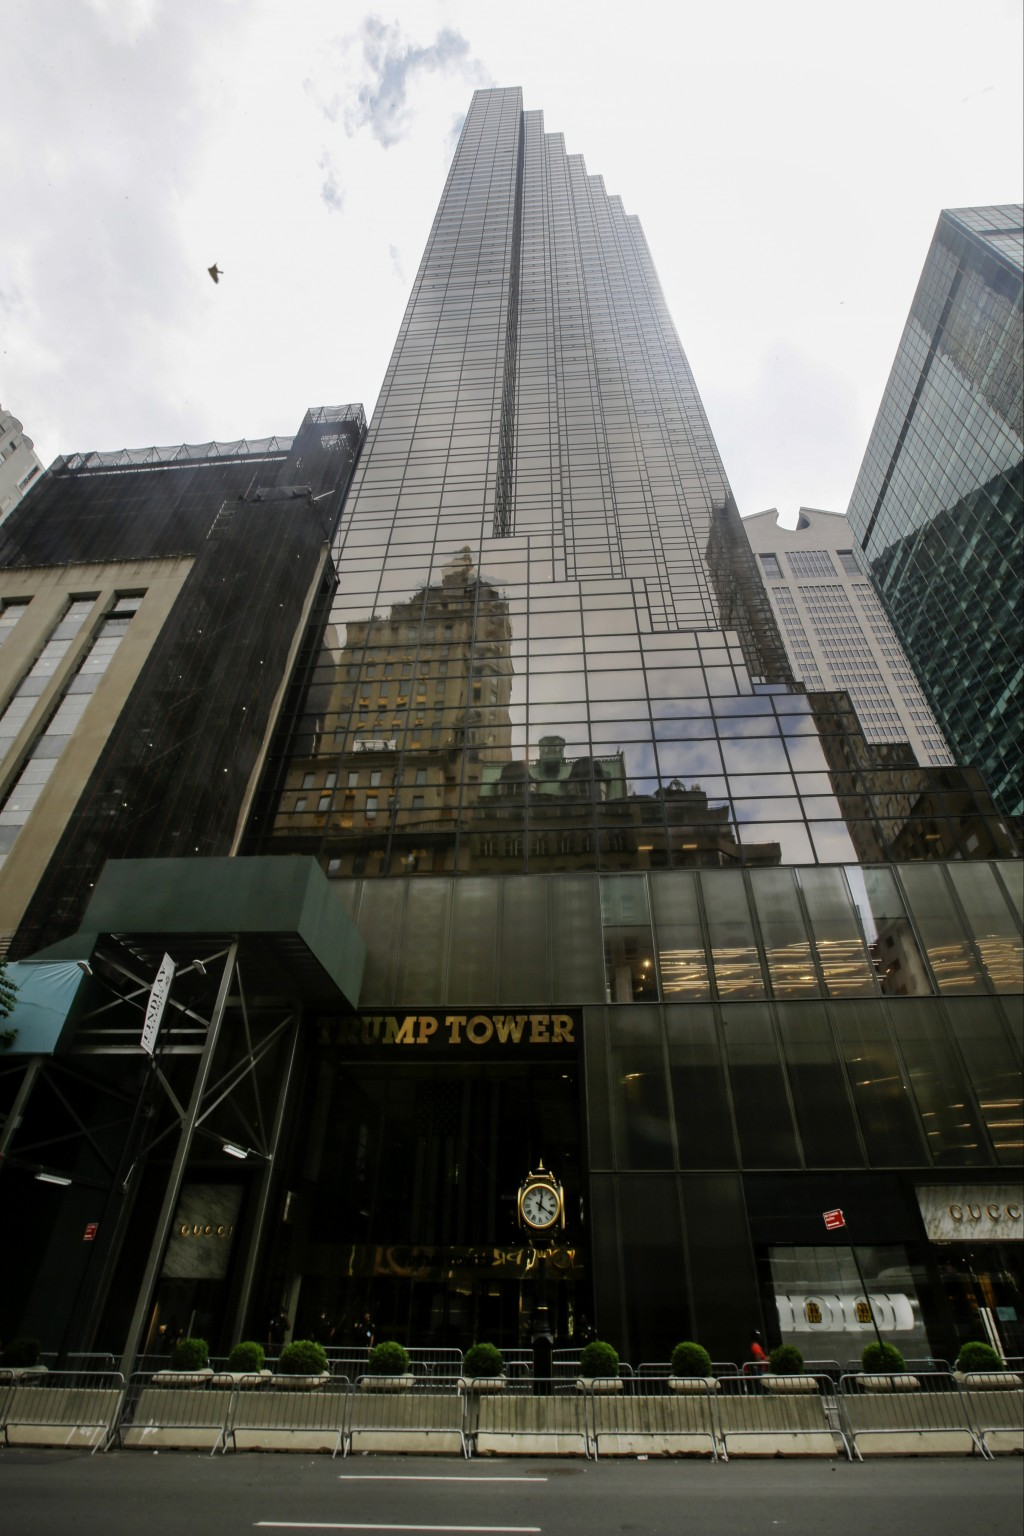 FILE - In this Tuesday, July 7, 2020 file photo, pedestrians walk past the Trump Tower building in New York. Trump's true financial picture has gotten...